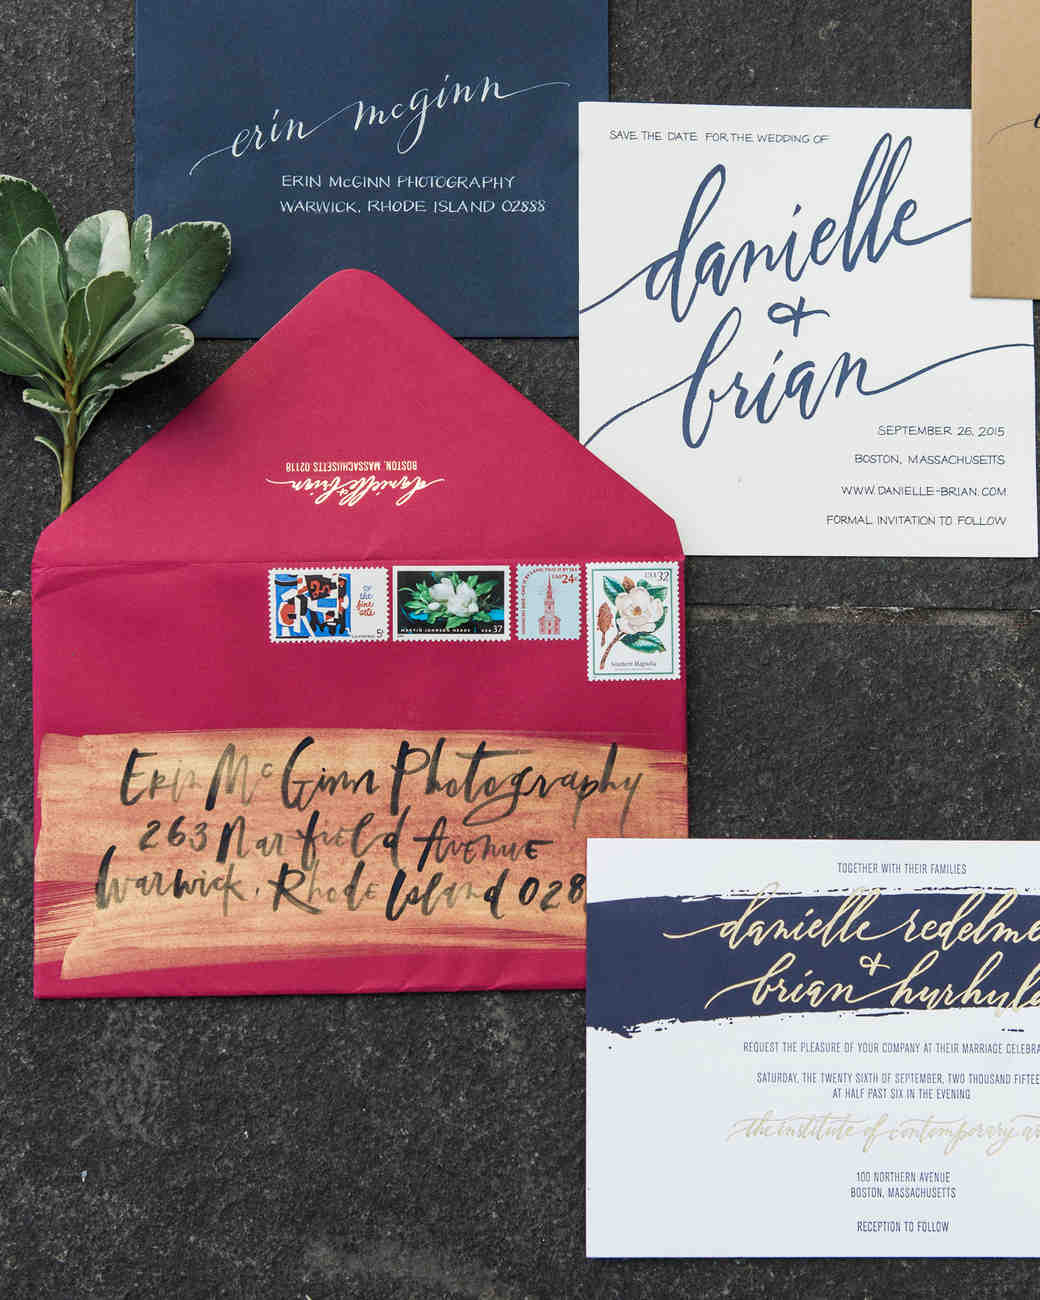 danielle-brian-wedding-stationery-0005-s113001-0616.jpg